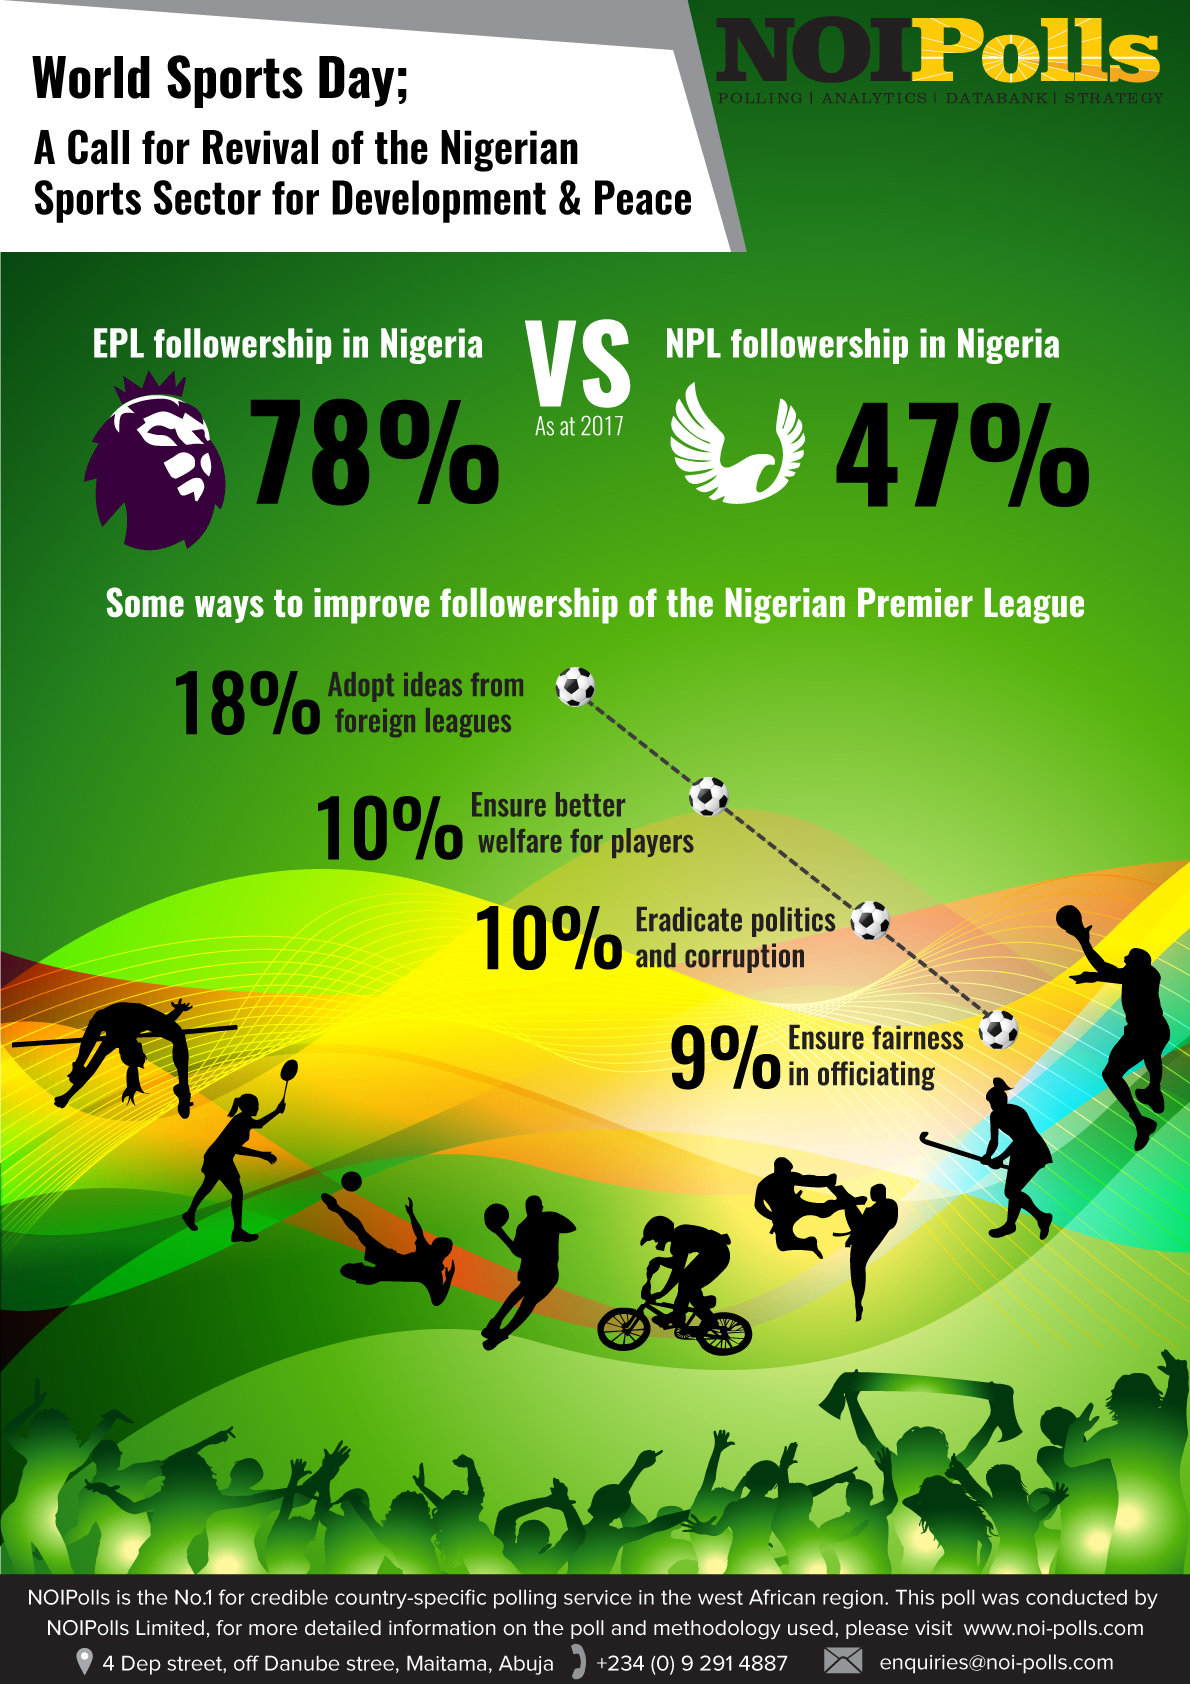 World Sports Day: A Call for Revival of the Nigerian Sports Sector for Development & Peace